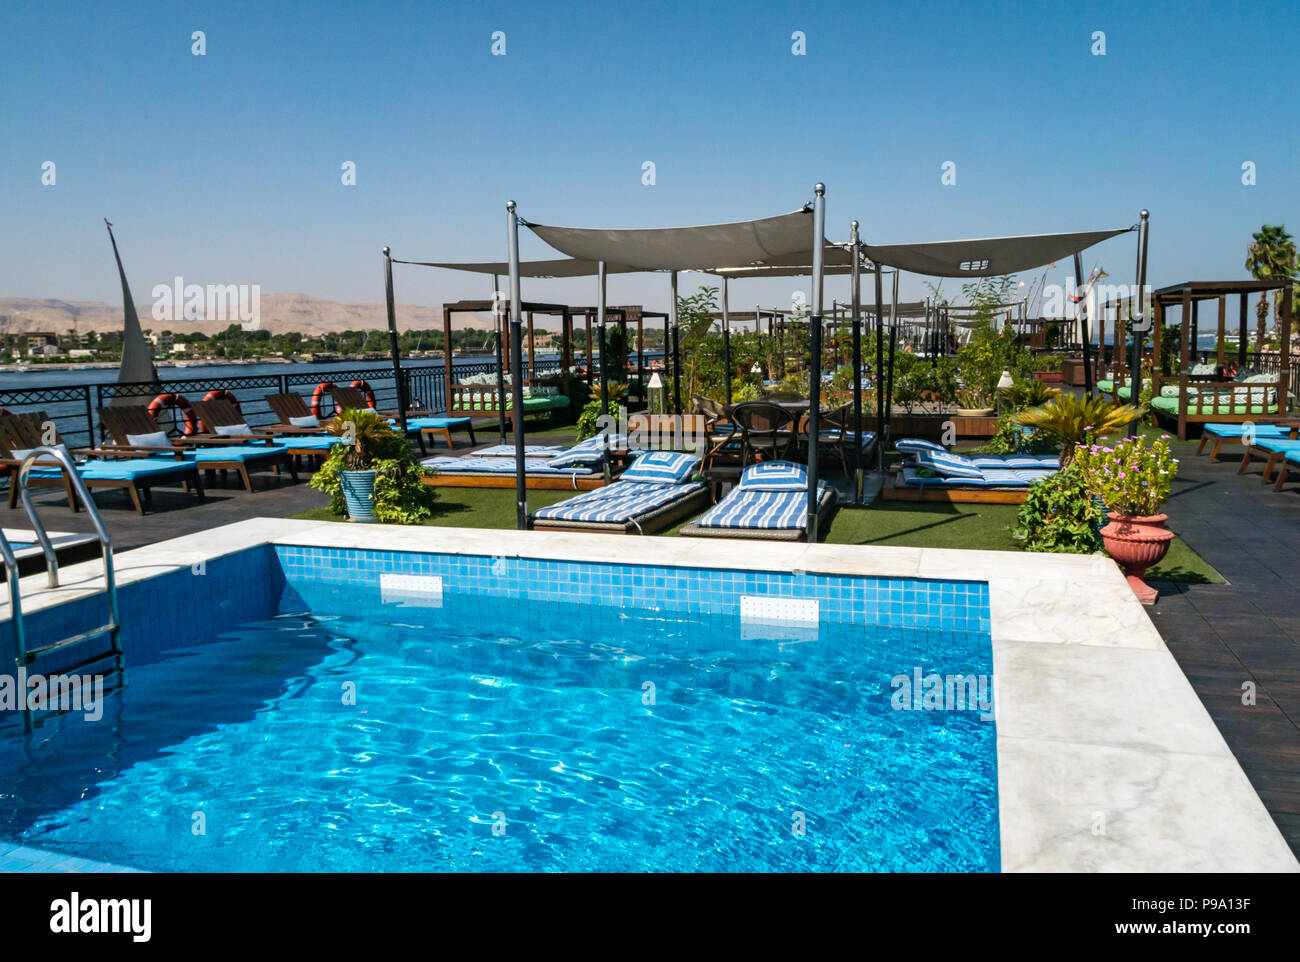 Cruise ship pool stock photos cruise ship pool stock images alamy for River cruise ships with swimming pool